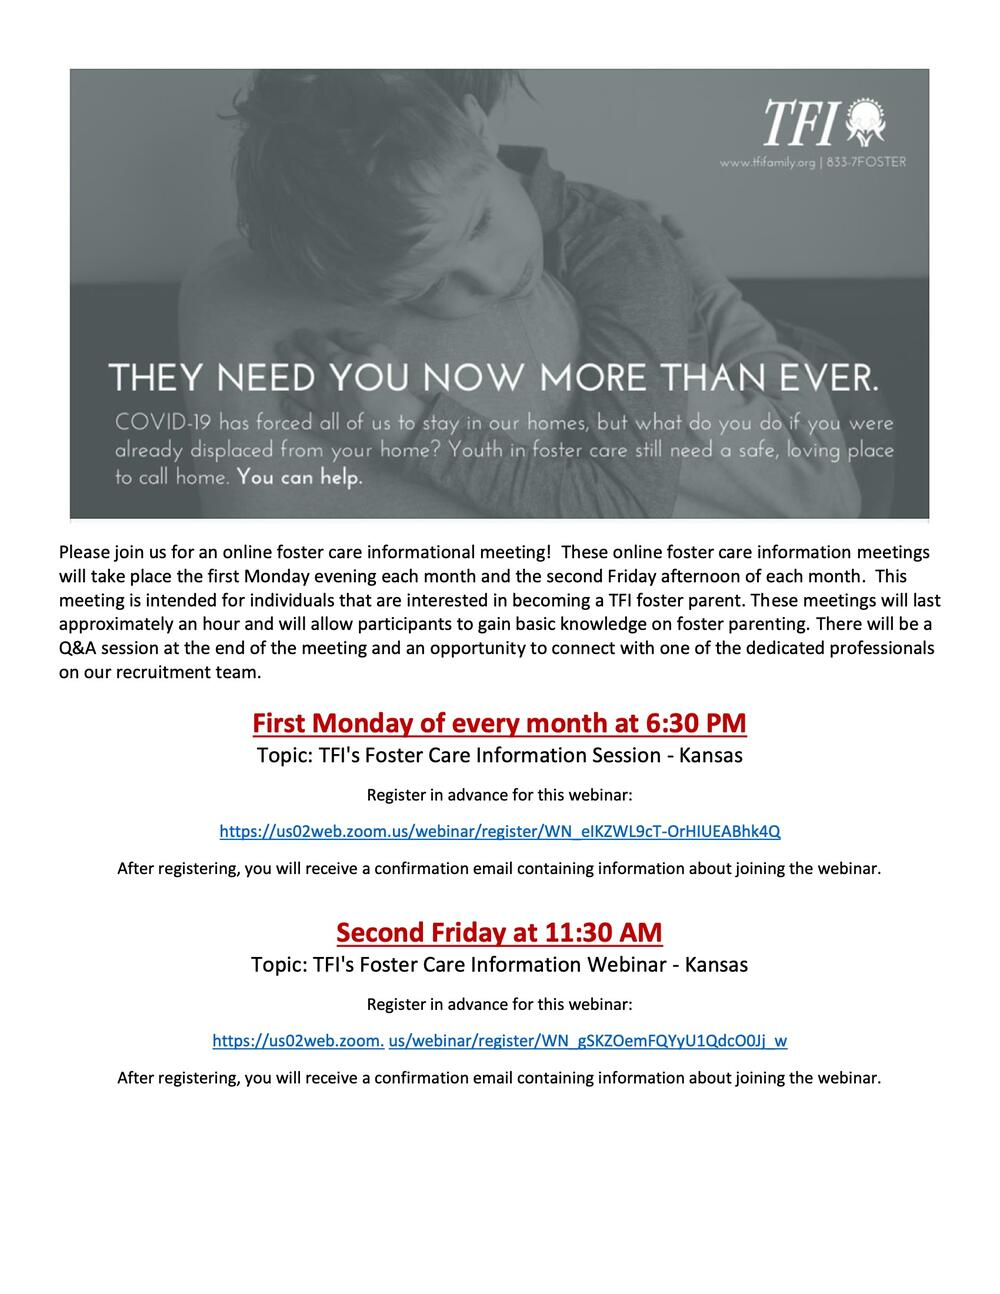 foster care informational meeting flyer